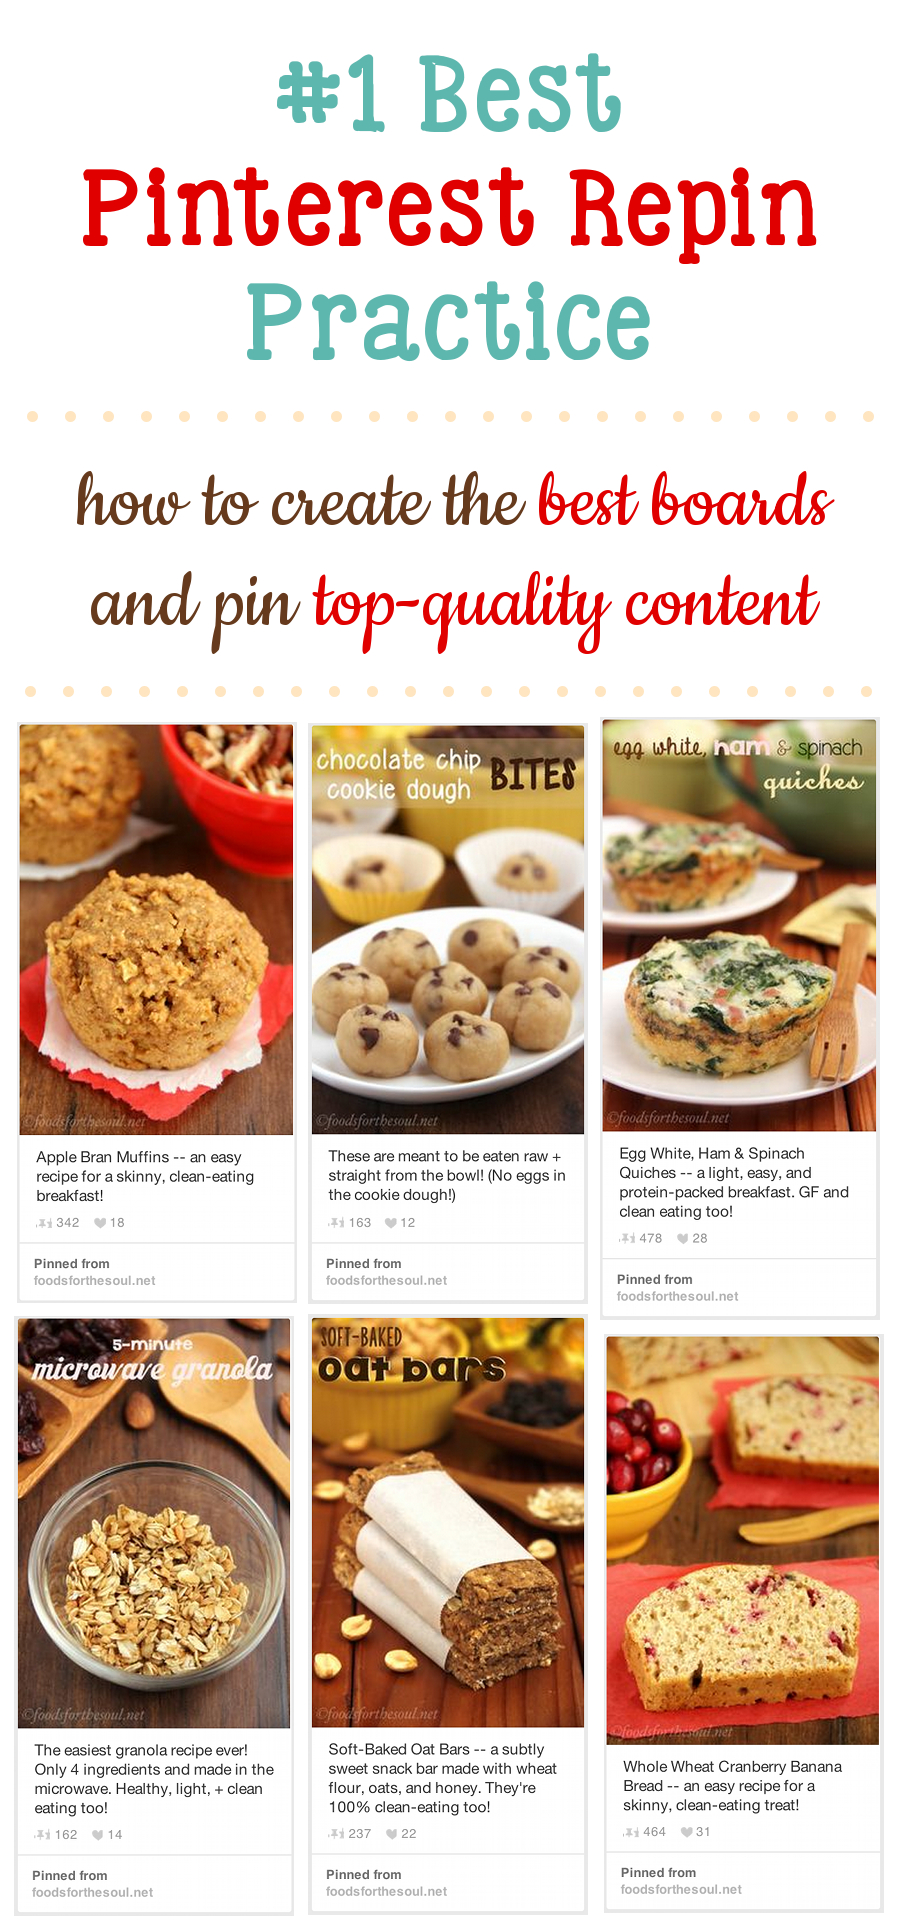 #1 Best Pinterest Repin Practice -- how to create the best boards & pin top-quality content. Must read!